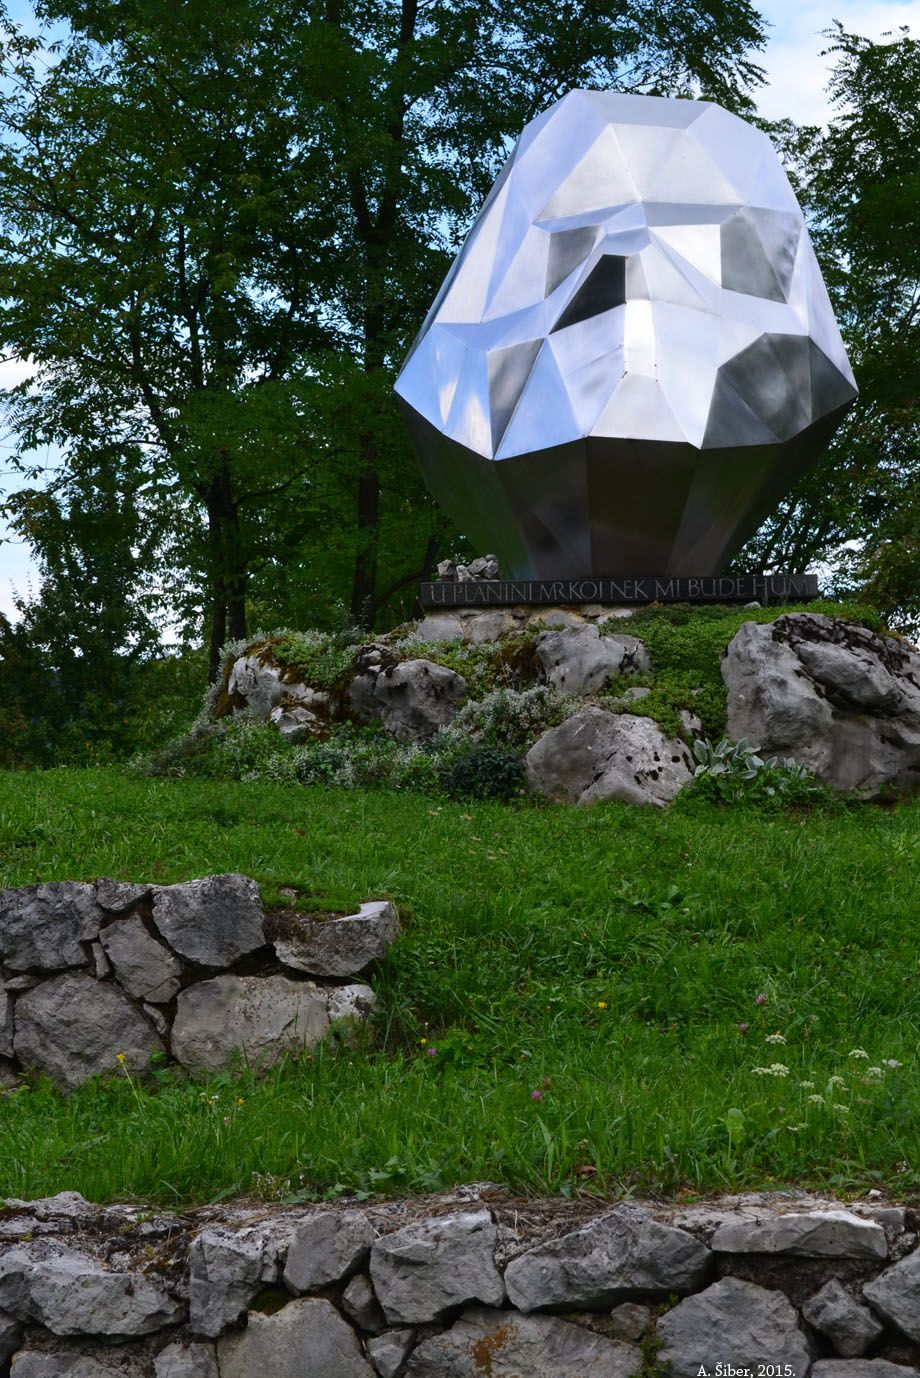 Bakic Lukovdol Ivan Goran Kovacic Outdoor Gear Outdoor Sculpture